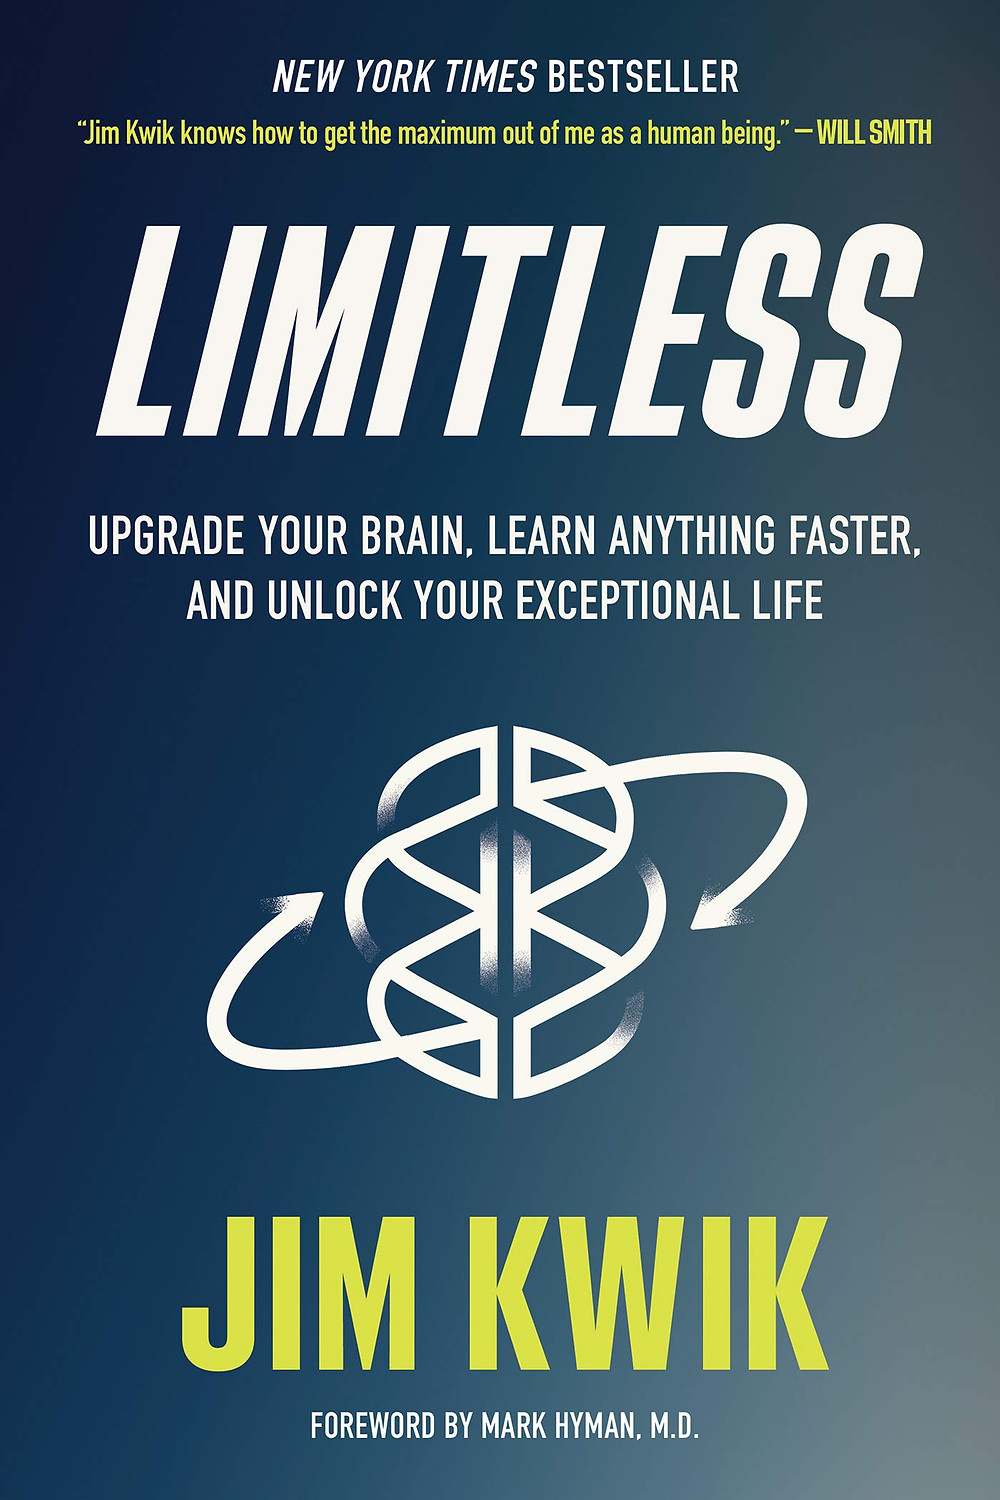 Limitless: Upgrade Your Brain, Learn Anything Faster, and Unlock Your Exceptional Life - by Jim Kwik